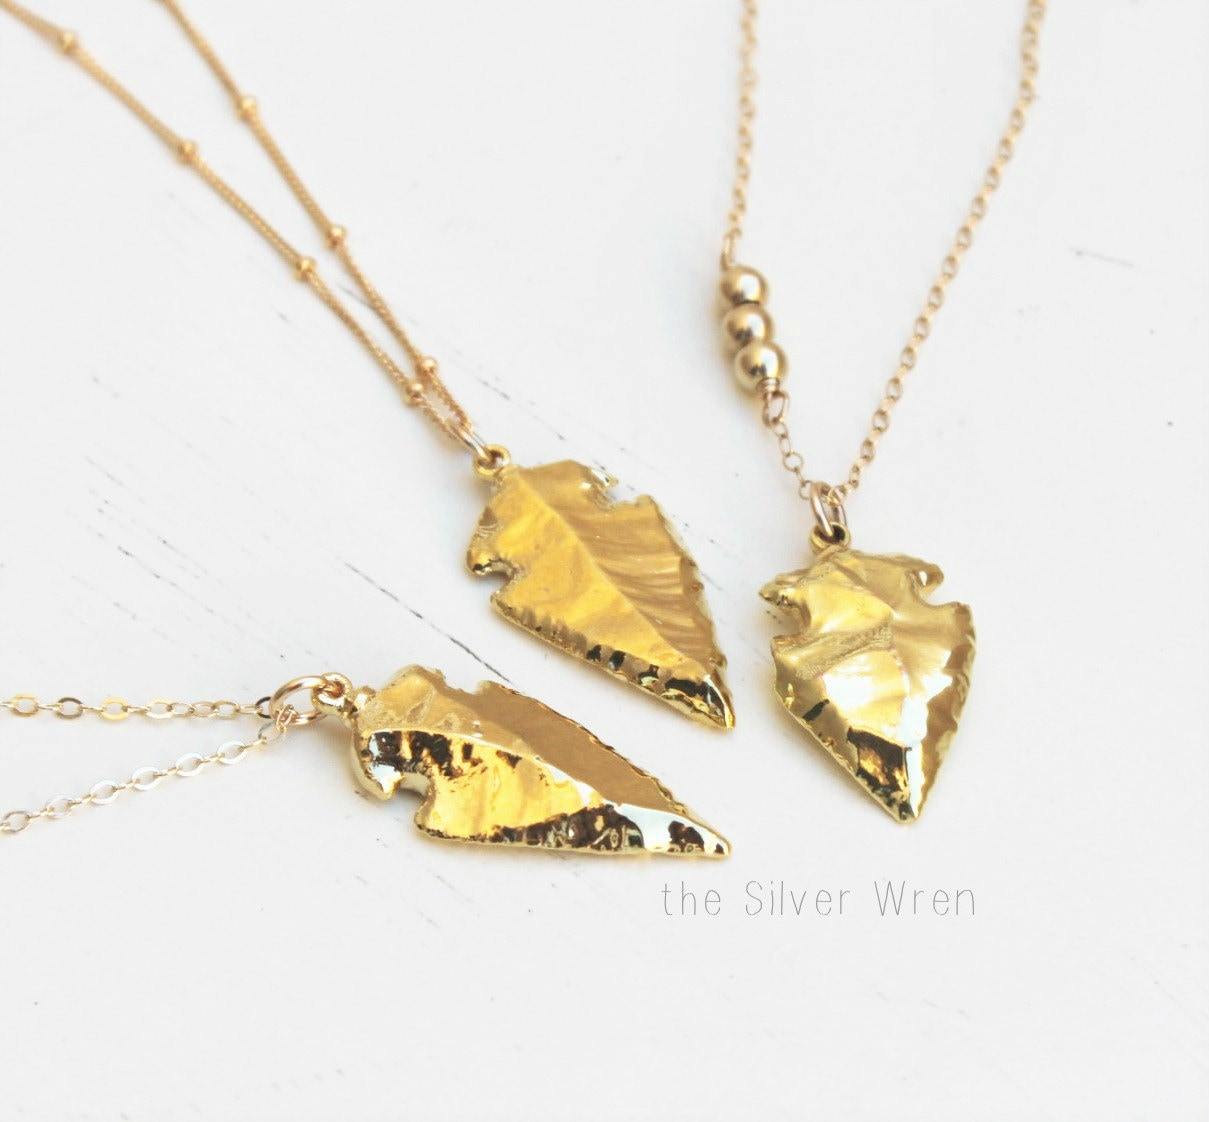 Long necklace arrowhead pendant necklace long gold necklace boho long necklace arrowhead pendant necklace long gold necklace boho necklace gold arrowhead necklace layering jewelry layering necklace aloadofball Image collections